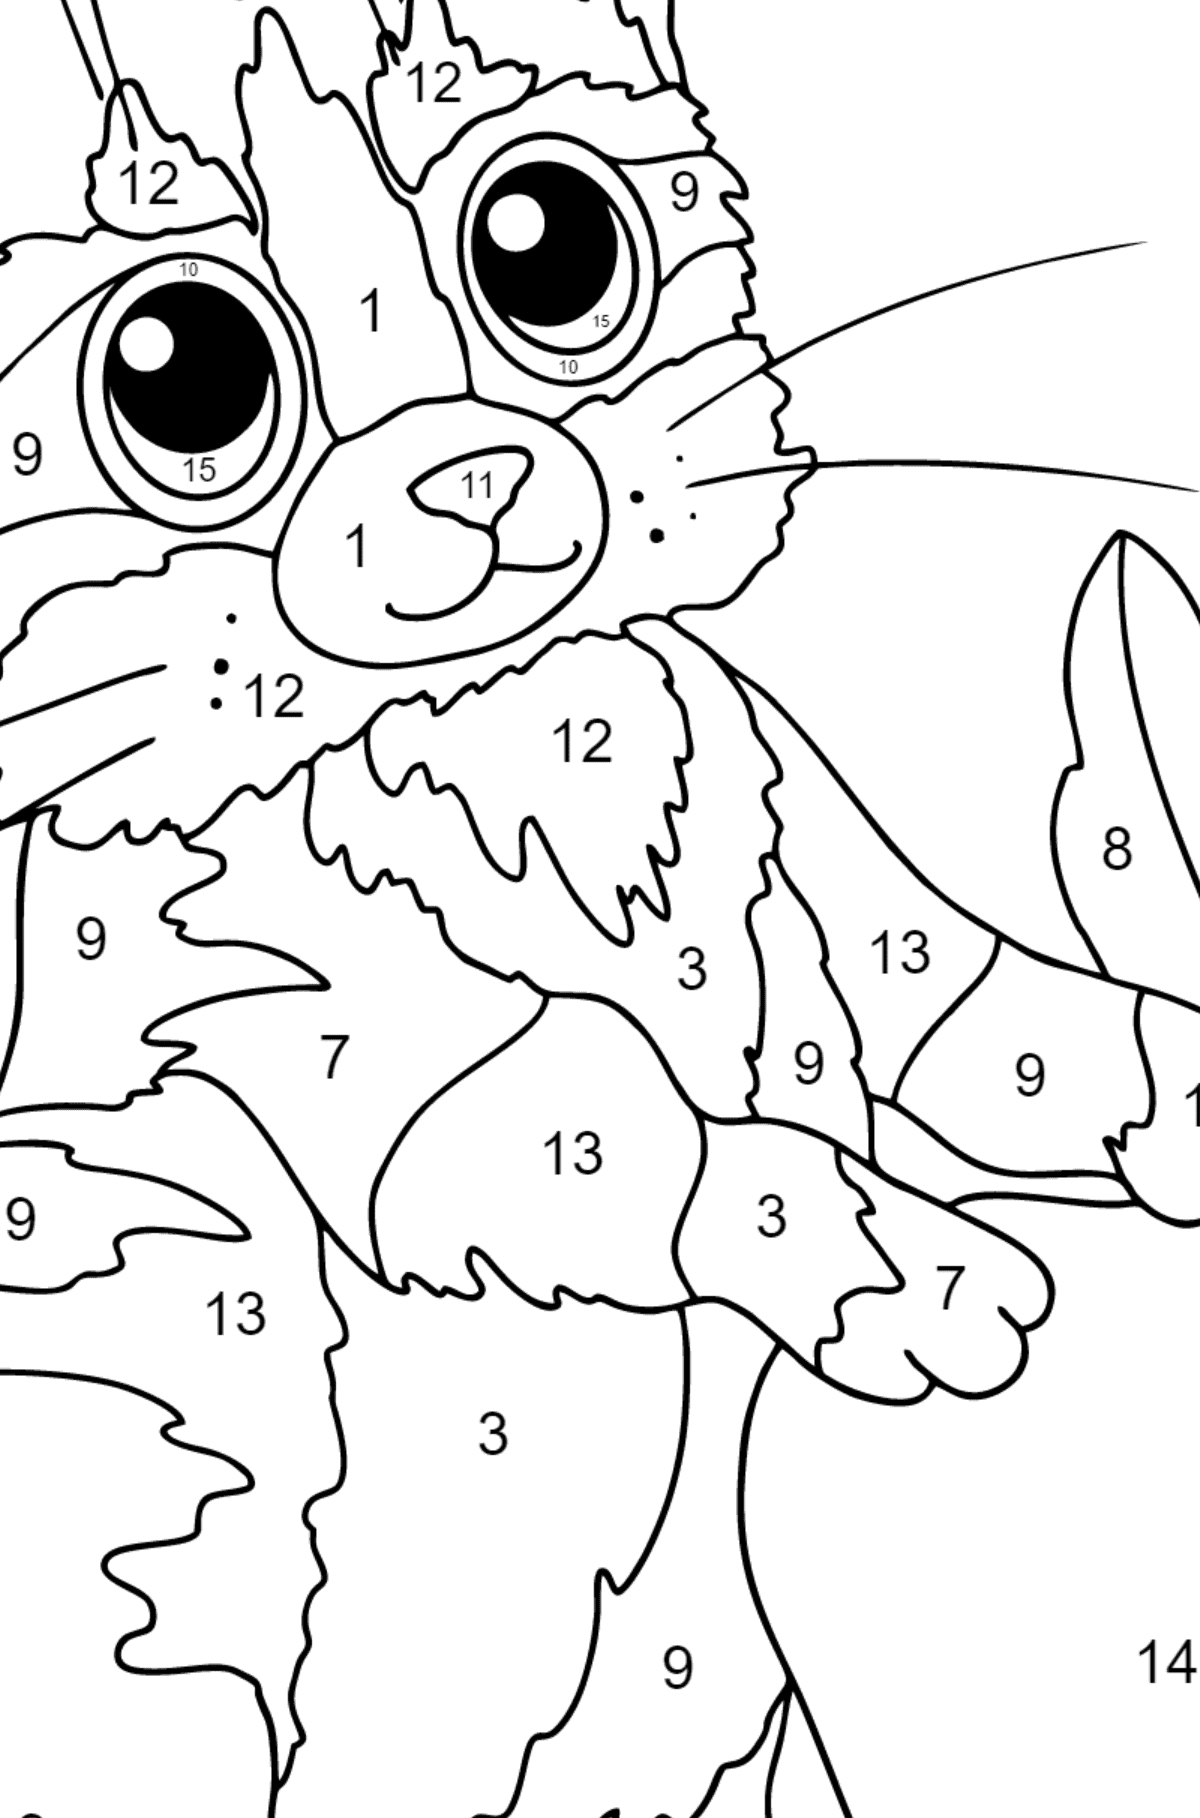 Coloring Page - A Cat and a Ripe Apple - Coloring by Numbers for Kids